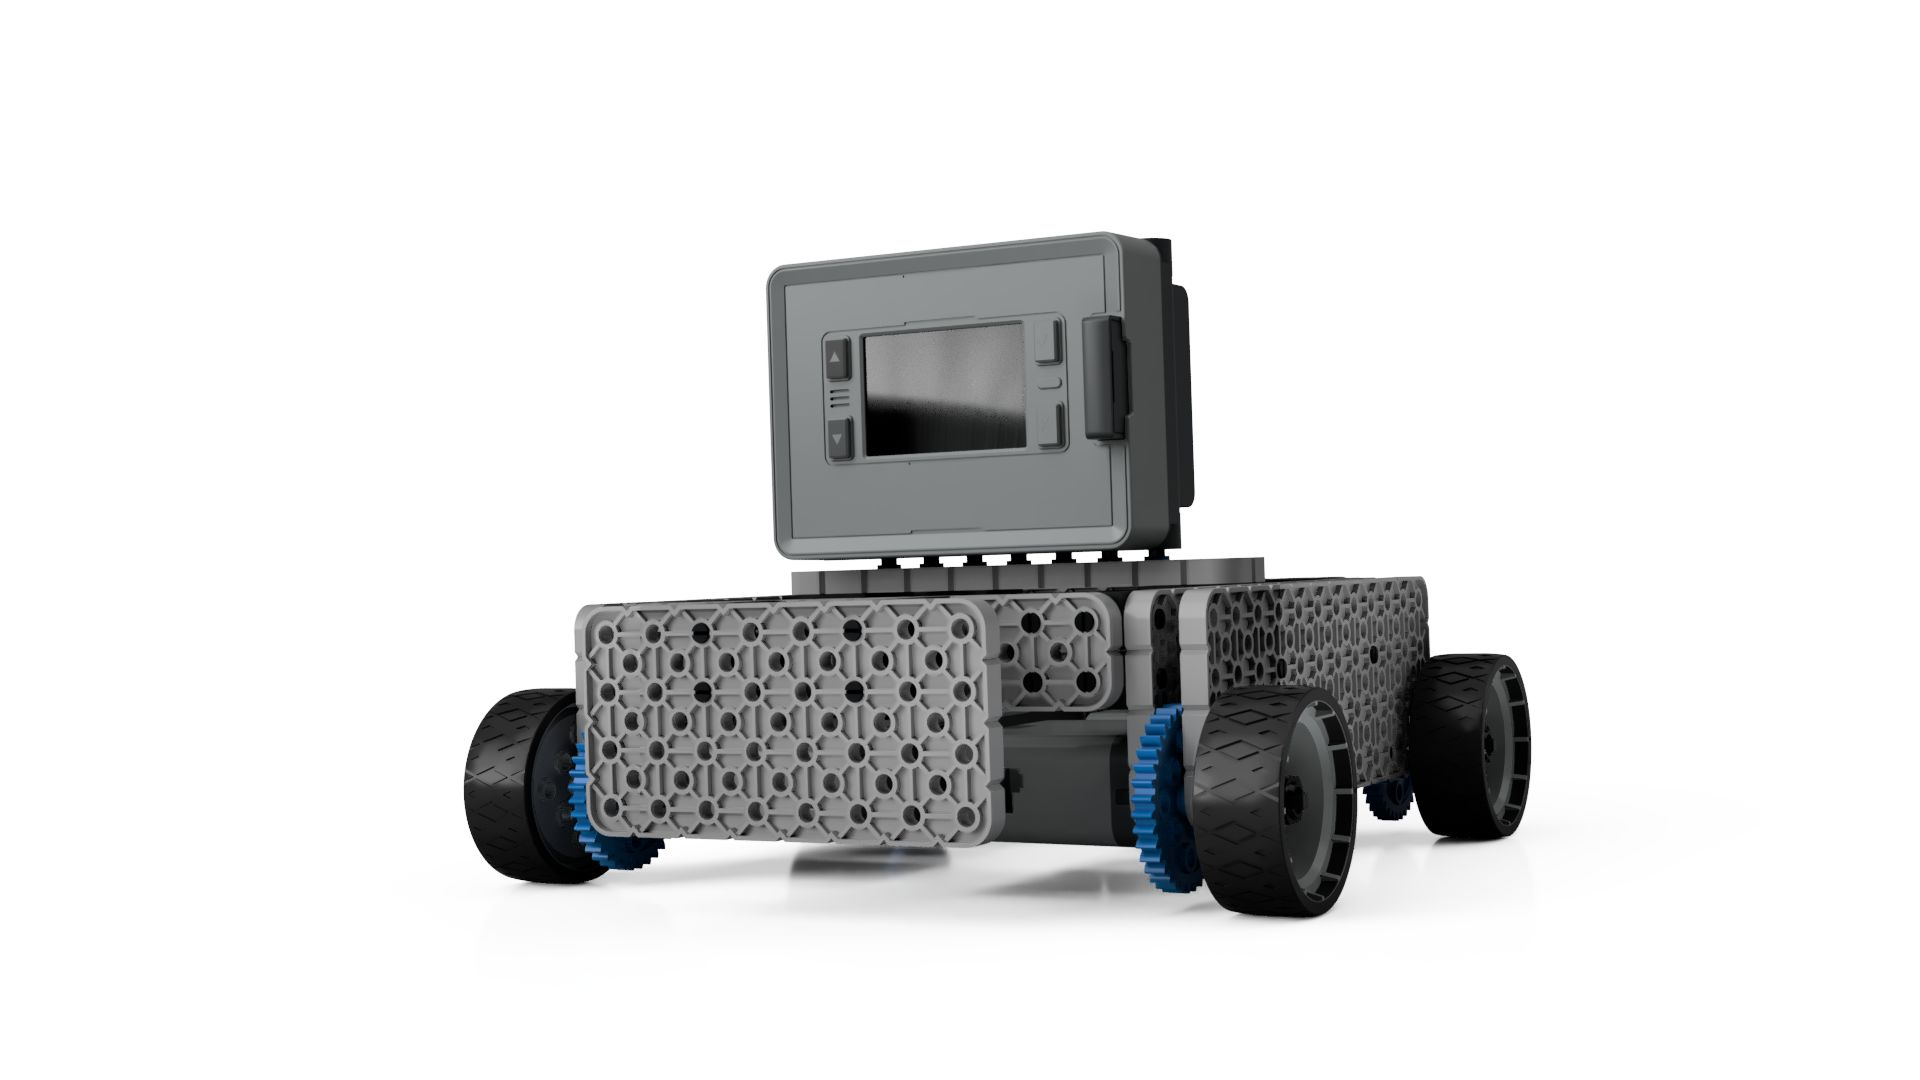 The-power-turtle-drivetrain---vex-iq-robotics-2019-may-25-06-23-32pm-000-customizedview11101098735-png-3500-3500